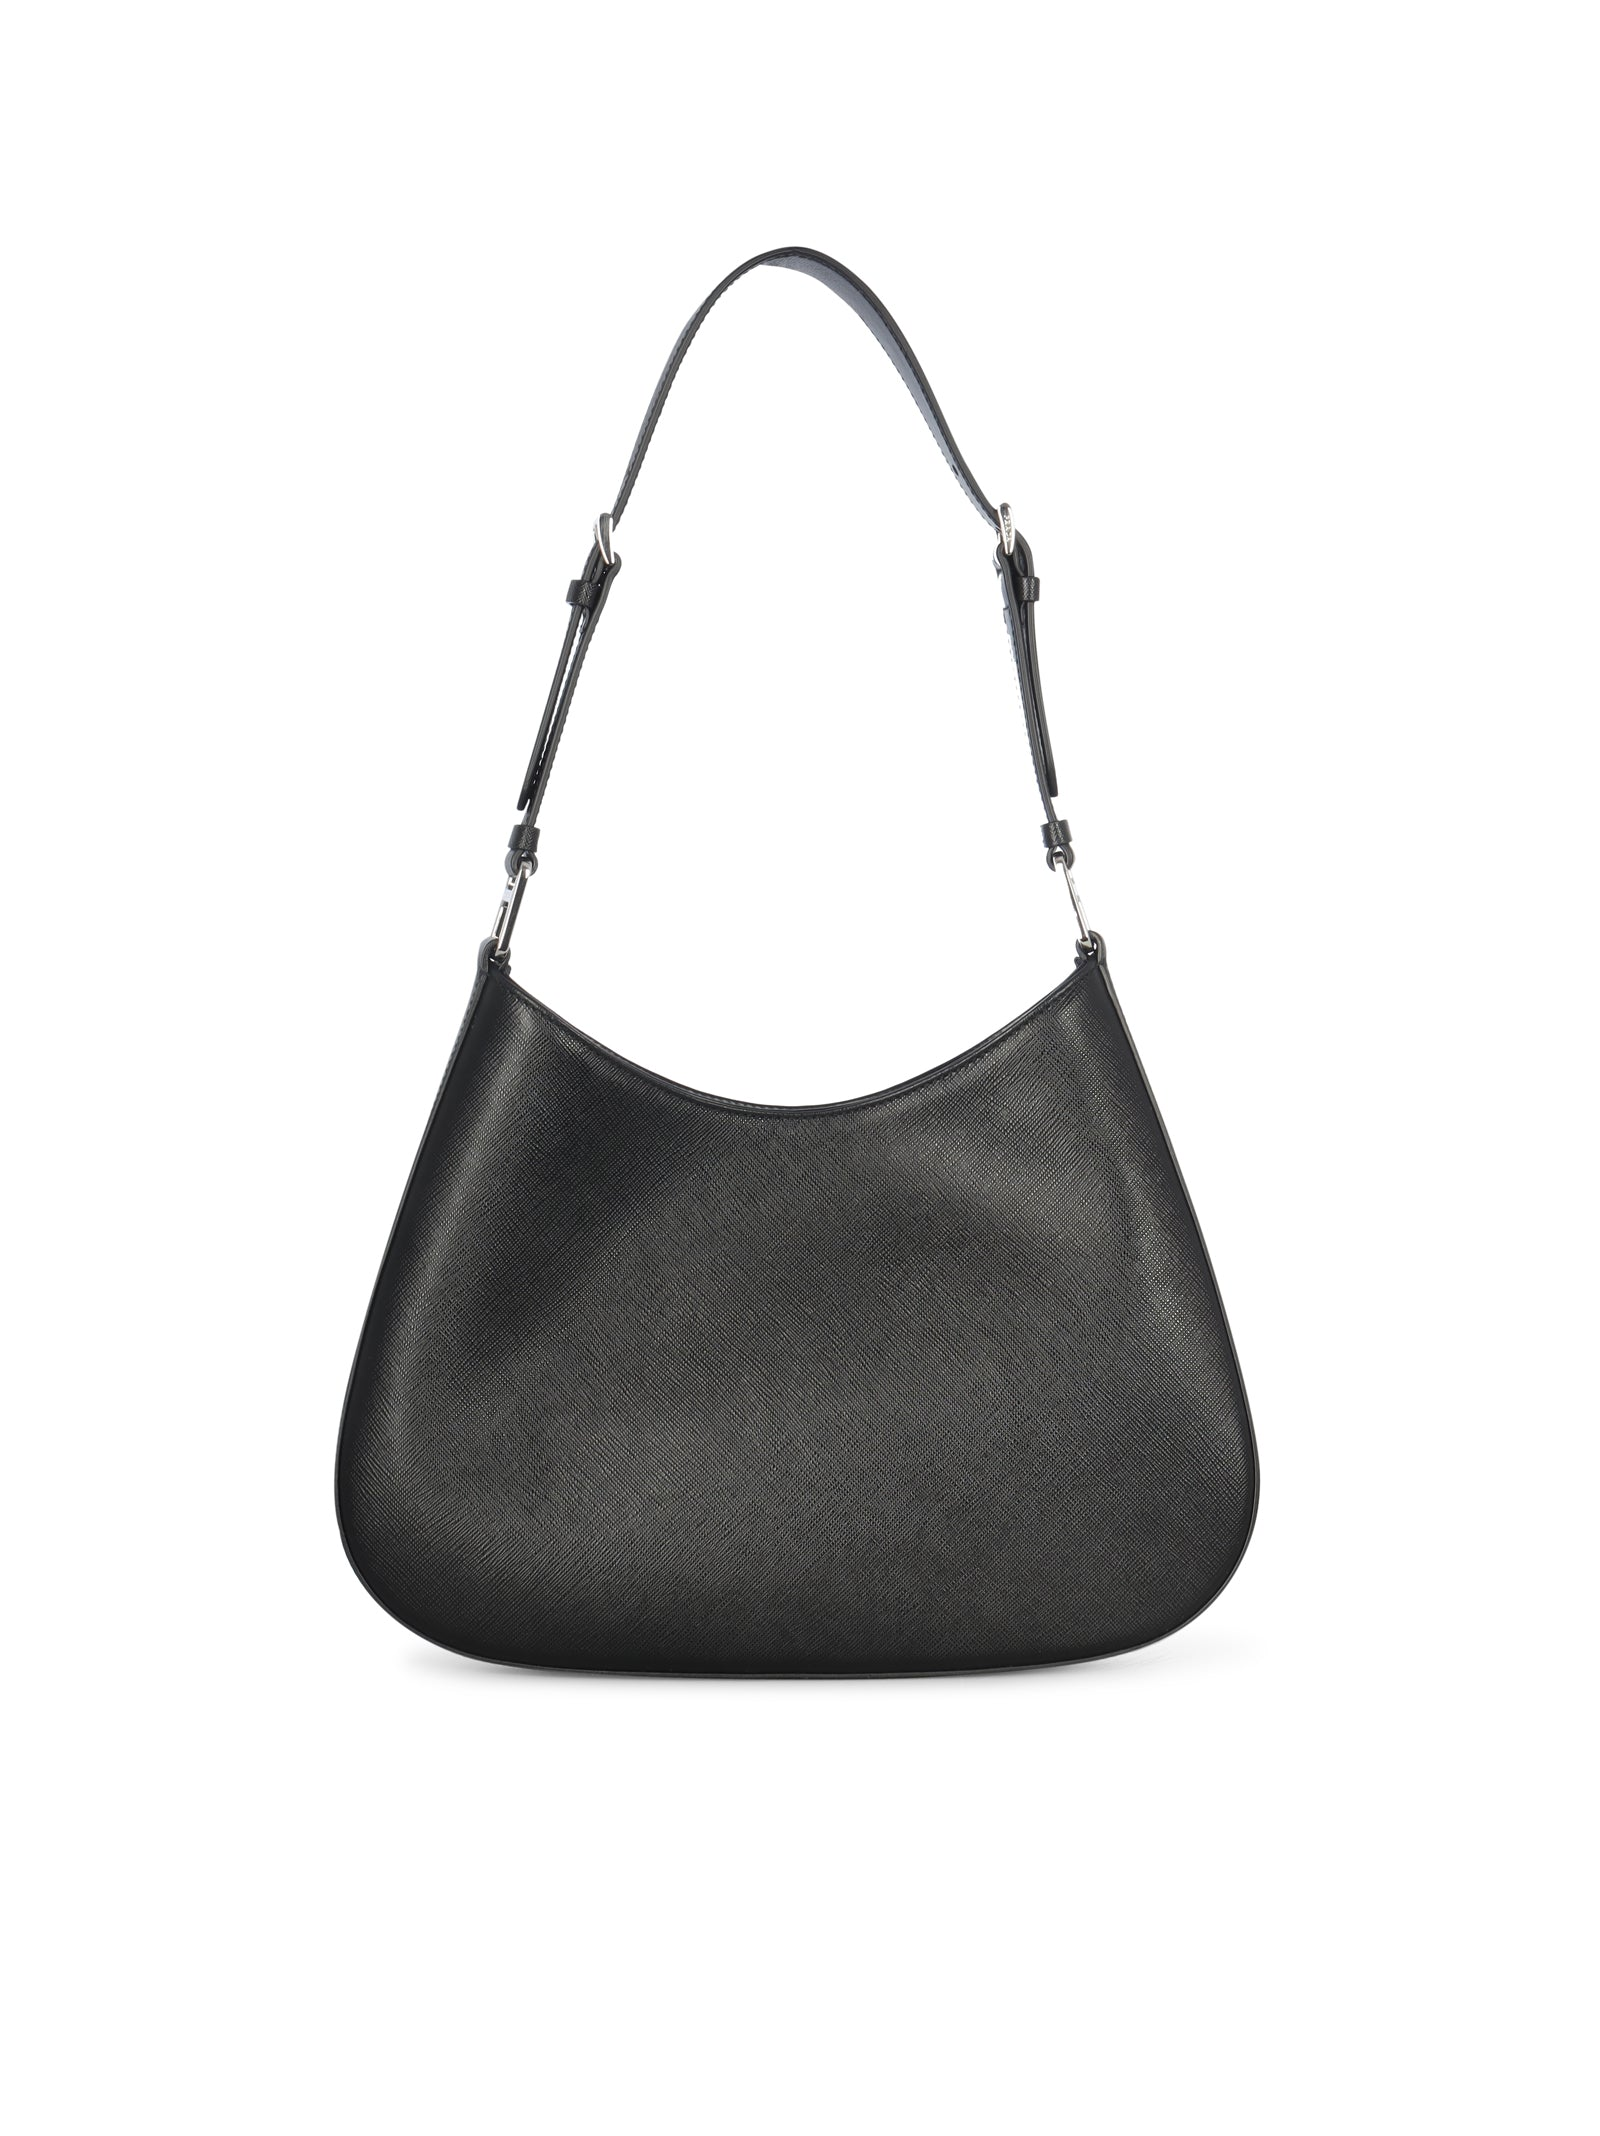 Prada Cleo saffiano leather shoulder bag